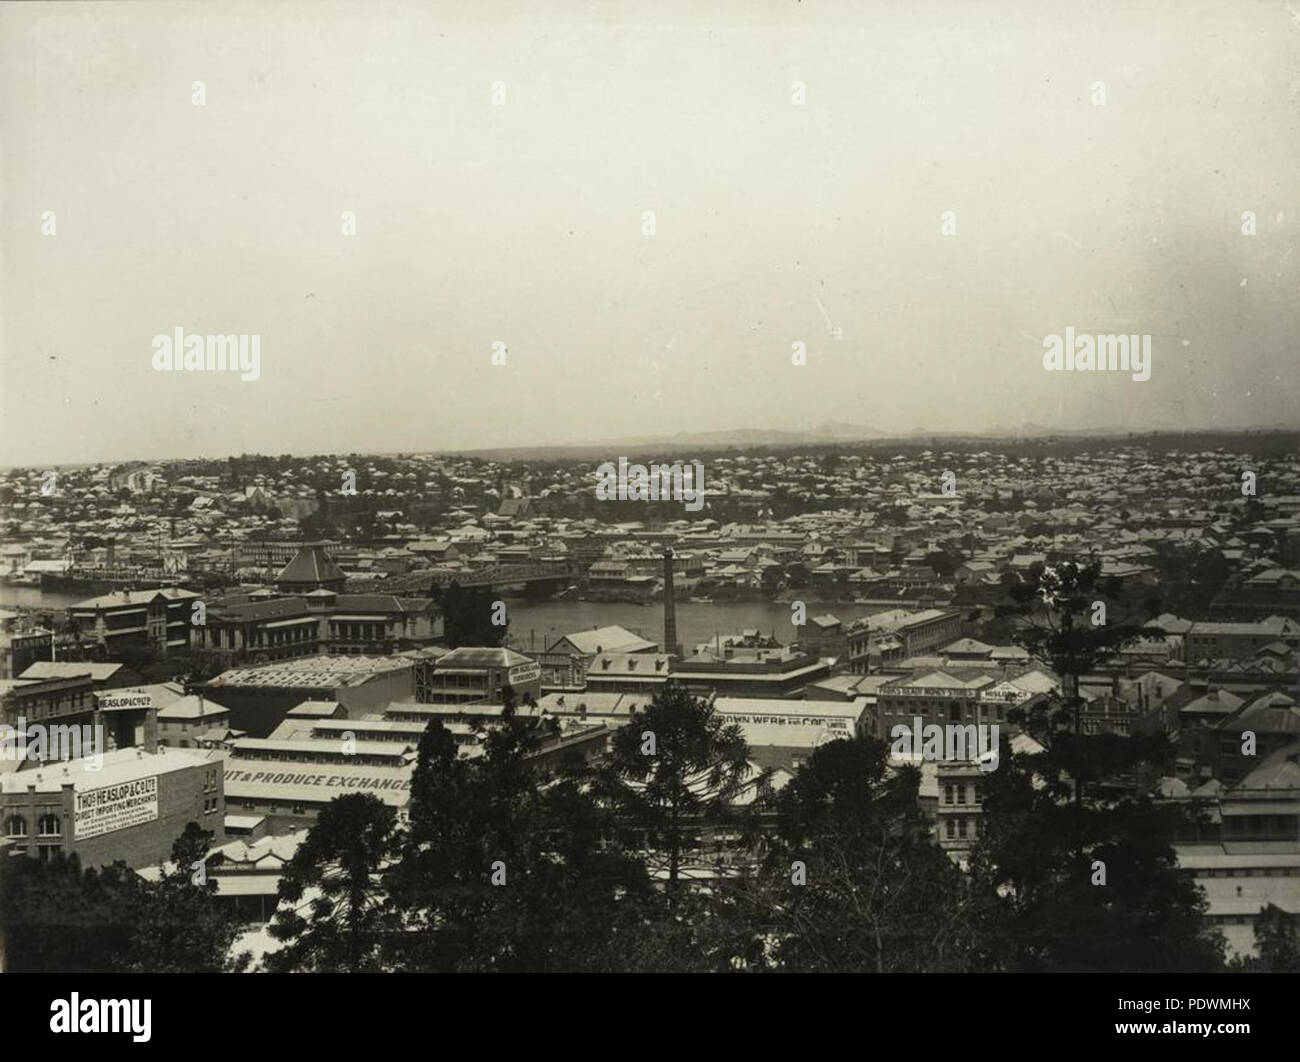 257 StateLibQld 1 254841 City of Brisbane panorama - Stock Image